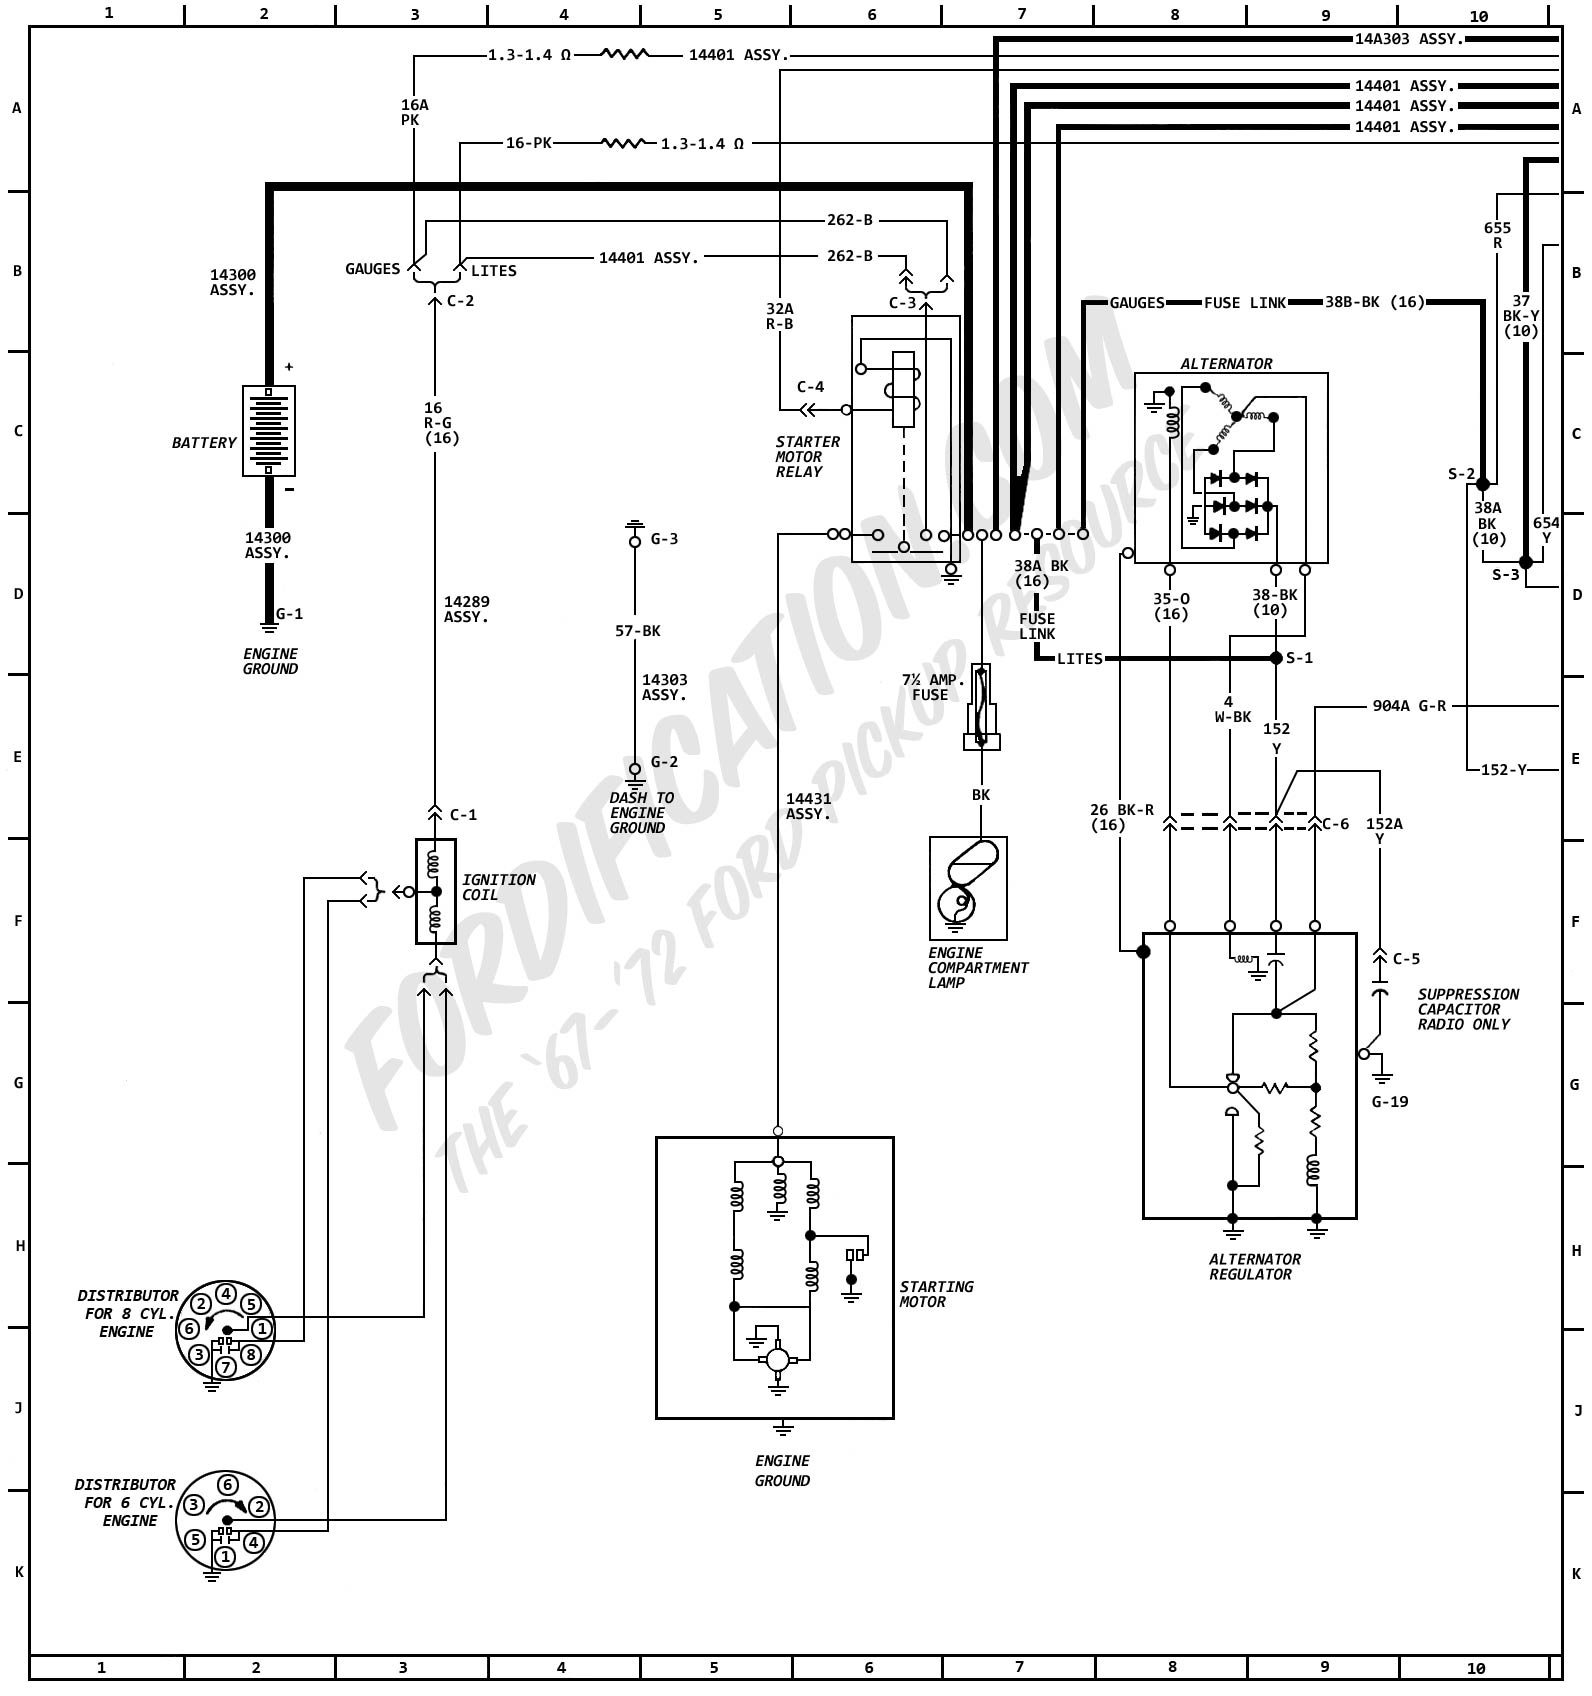 pertronix ignition wiring diagram franklin submersible well pump frying petronix pick-up coils - the fordification.com forums